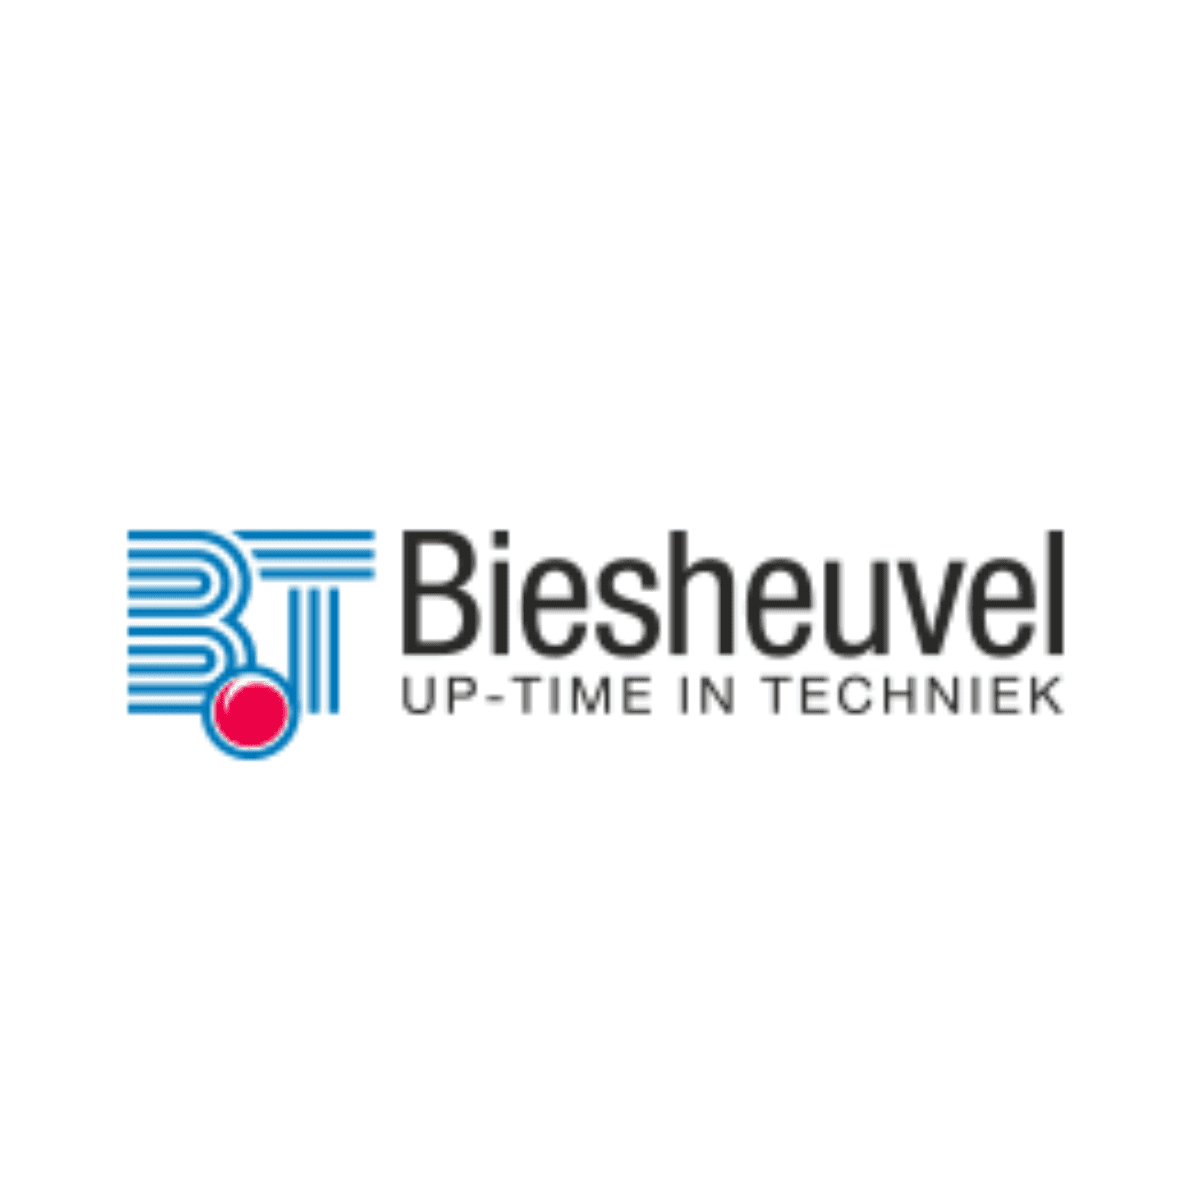 Case Study: Biesheuvel Groep B.V. Taps Parallels RAS to Streamline Manufacturing IT Infrastructure